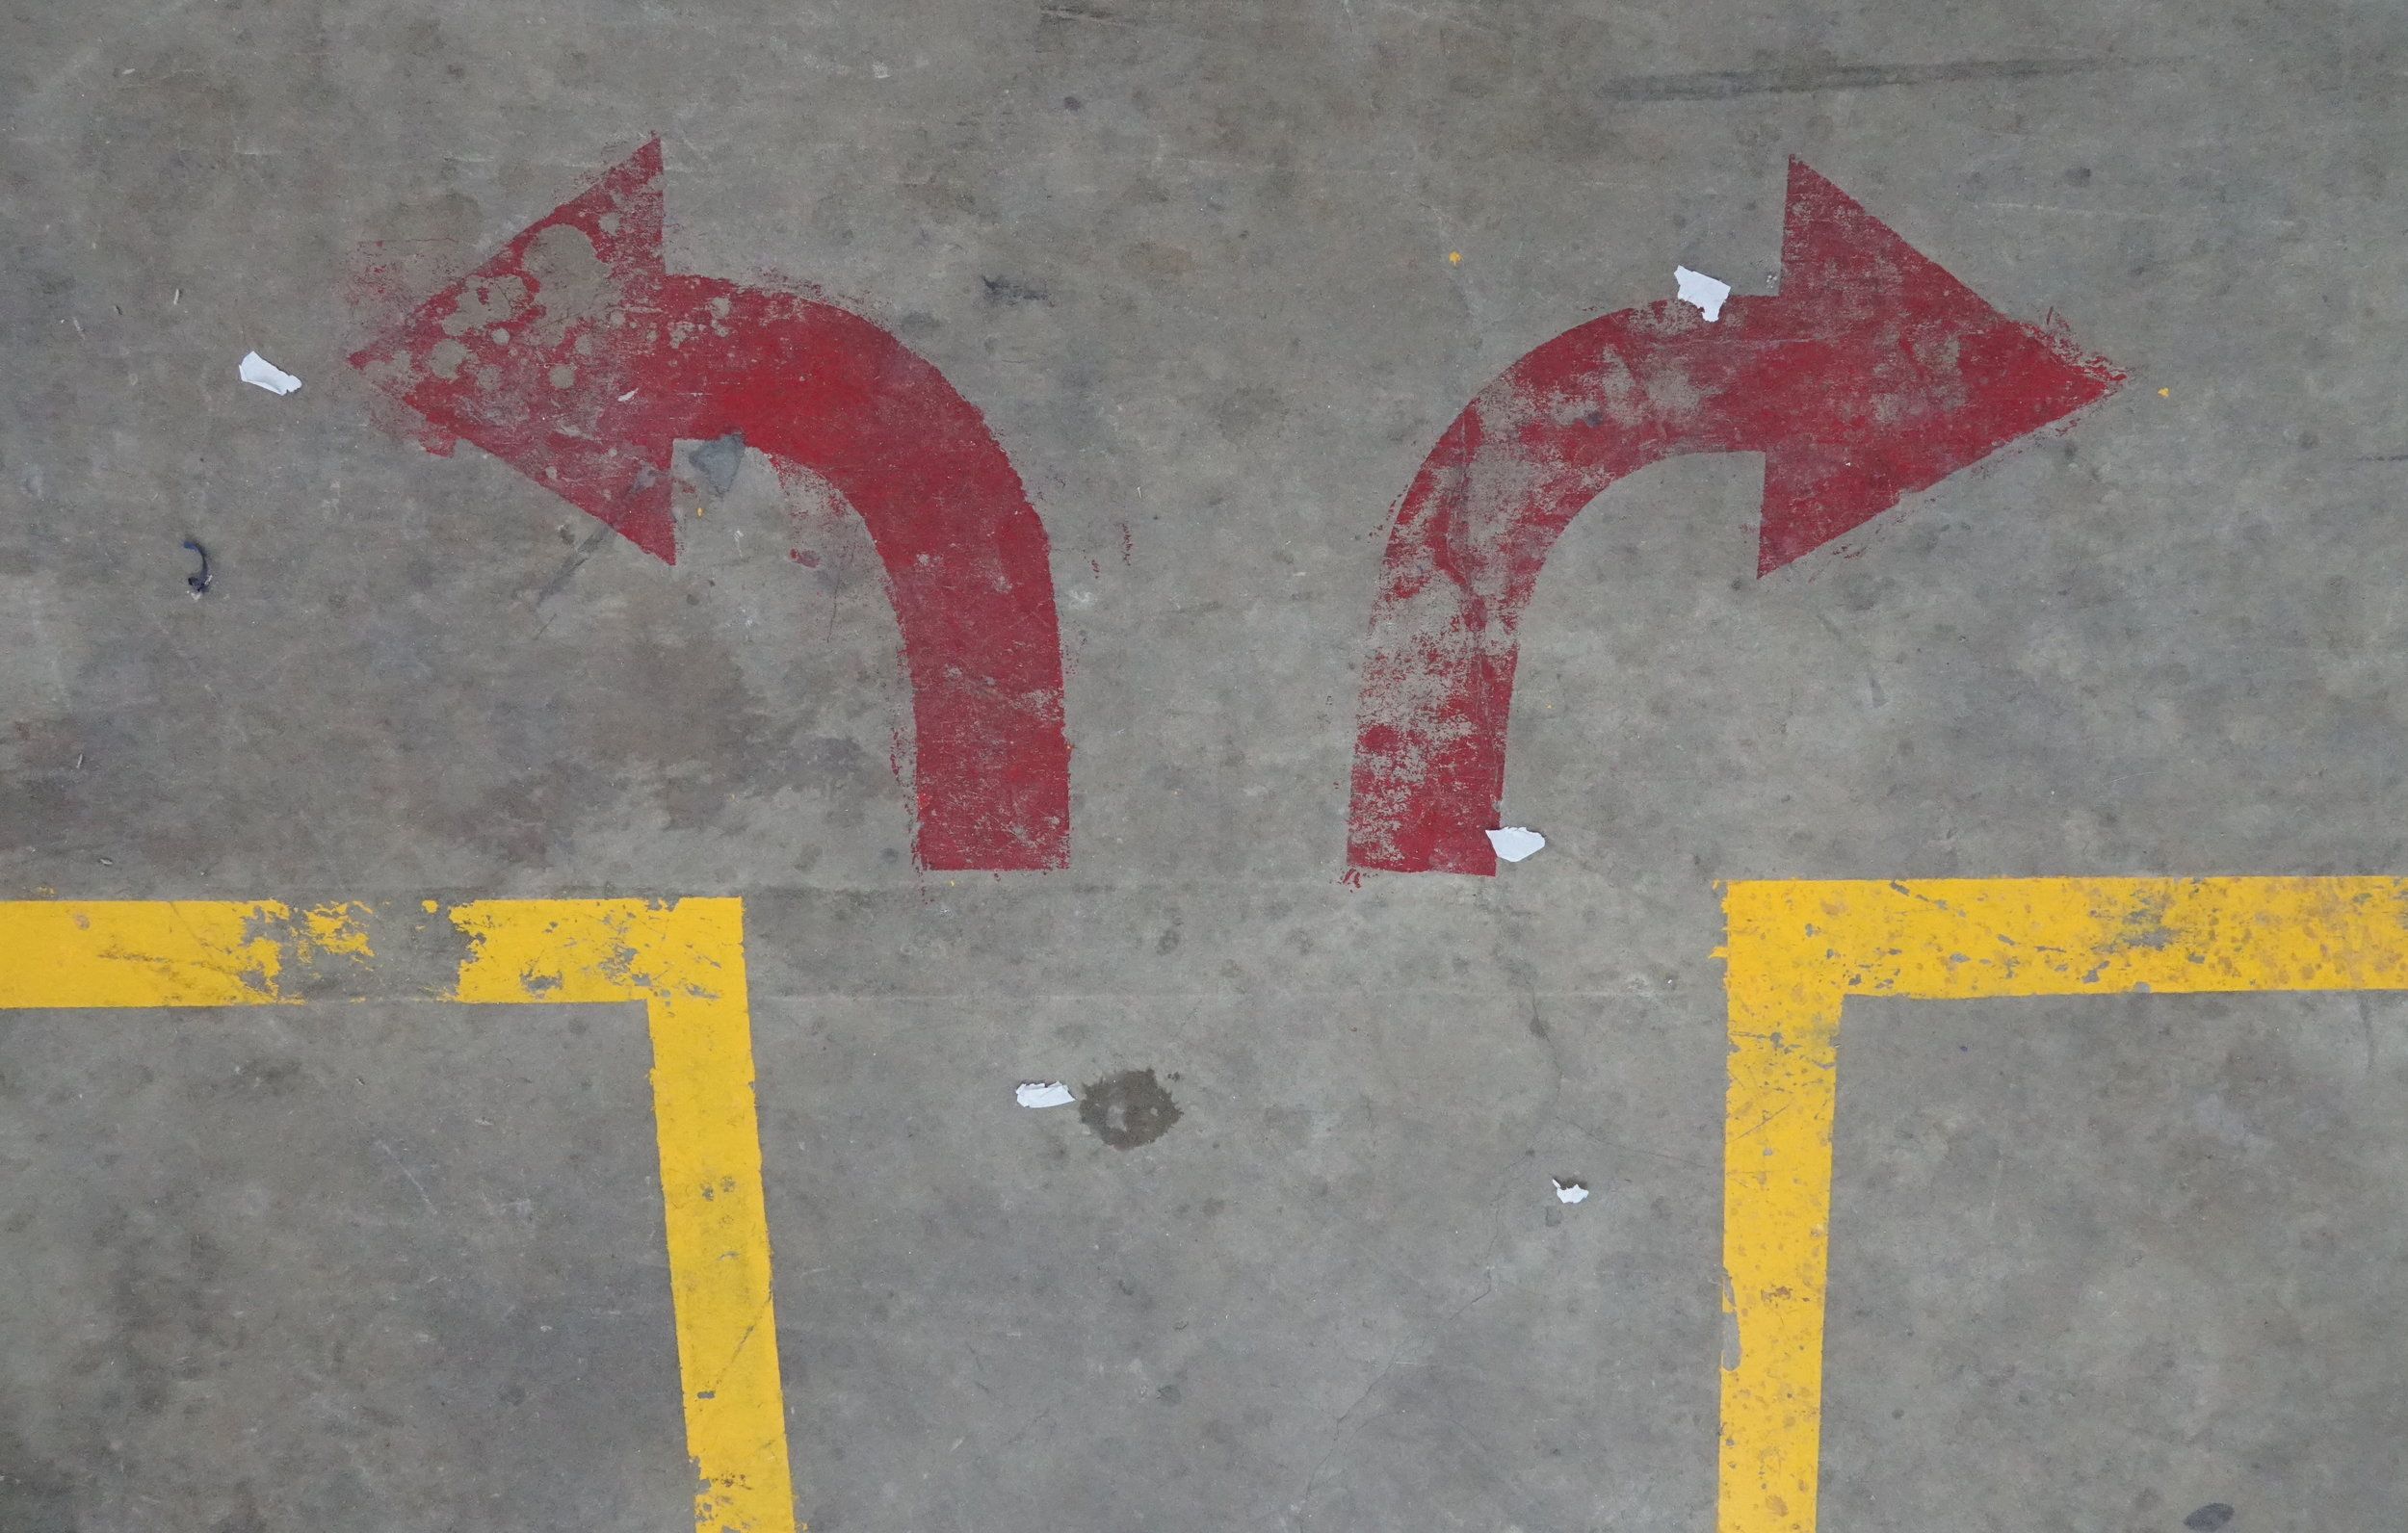 The red arrow is a common site in factory spaces, it has become our unofficial meme guiding us towards collaboration and outward looking approaches to manufacturing